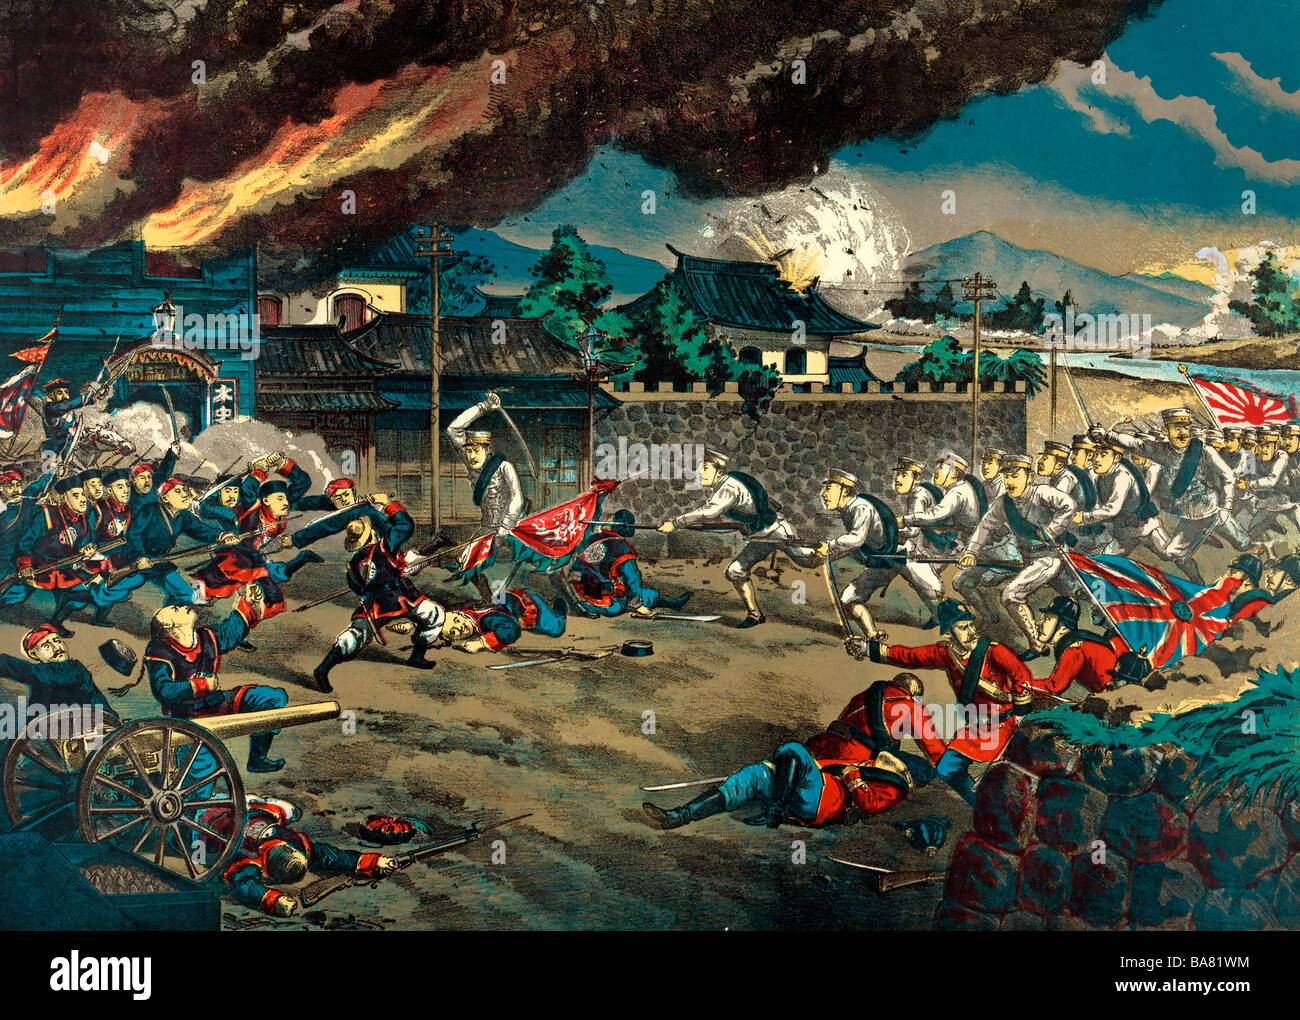 Battle at the machine works, T'ien-chin, China during the Boxer Rebellion - Stock Image